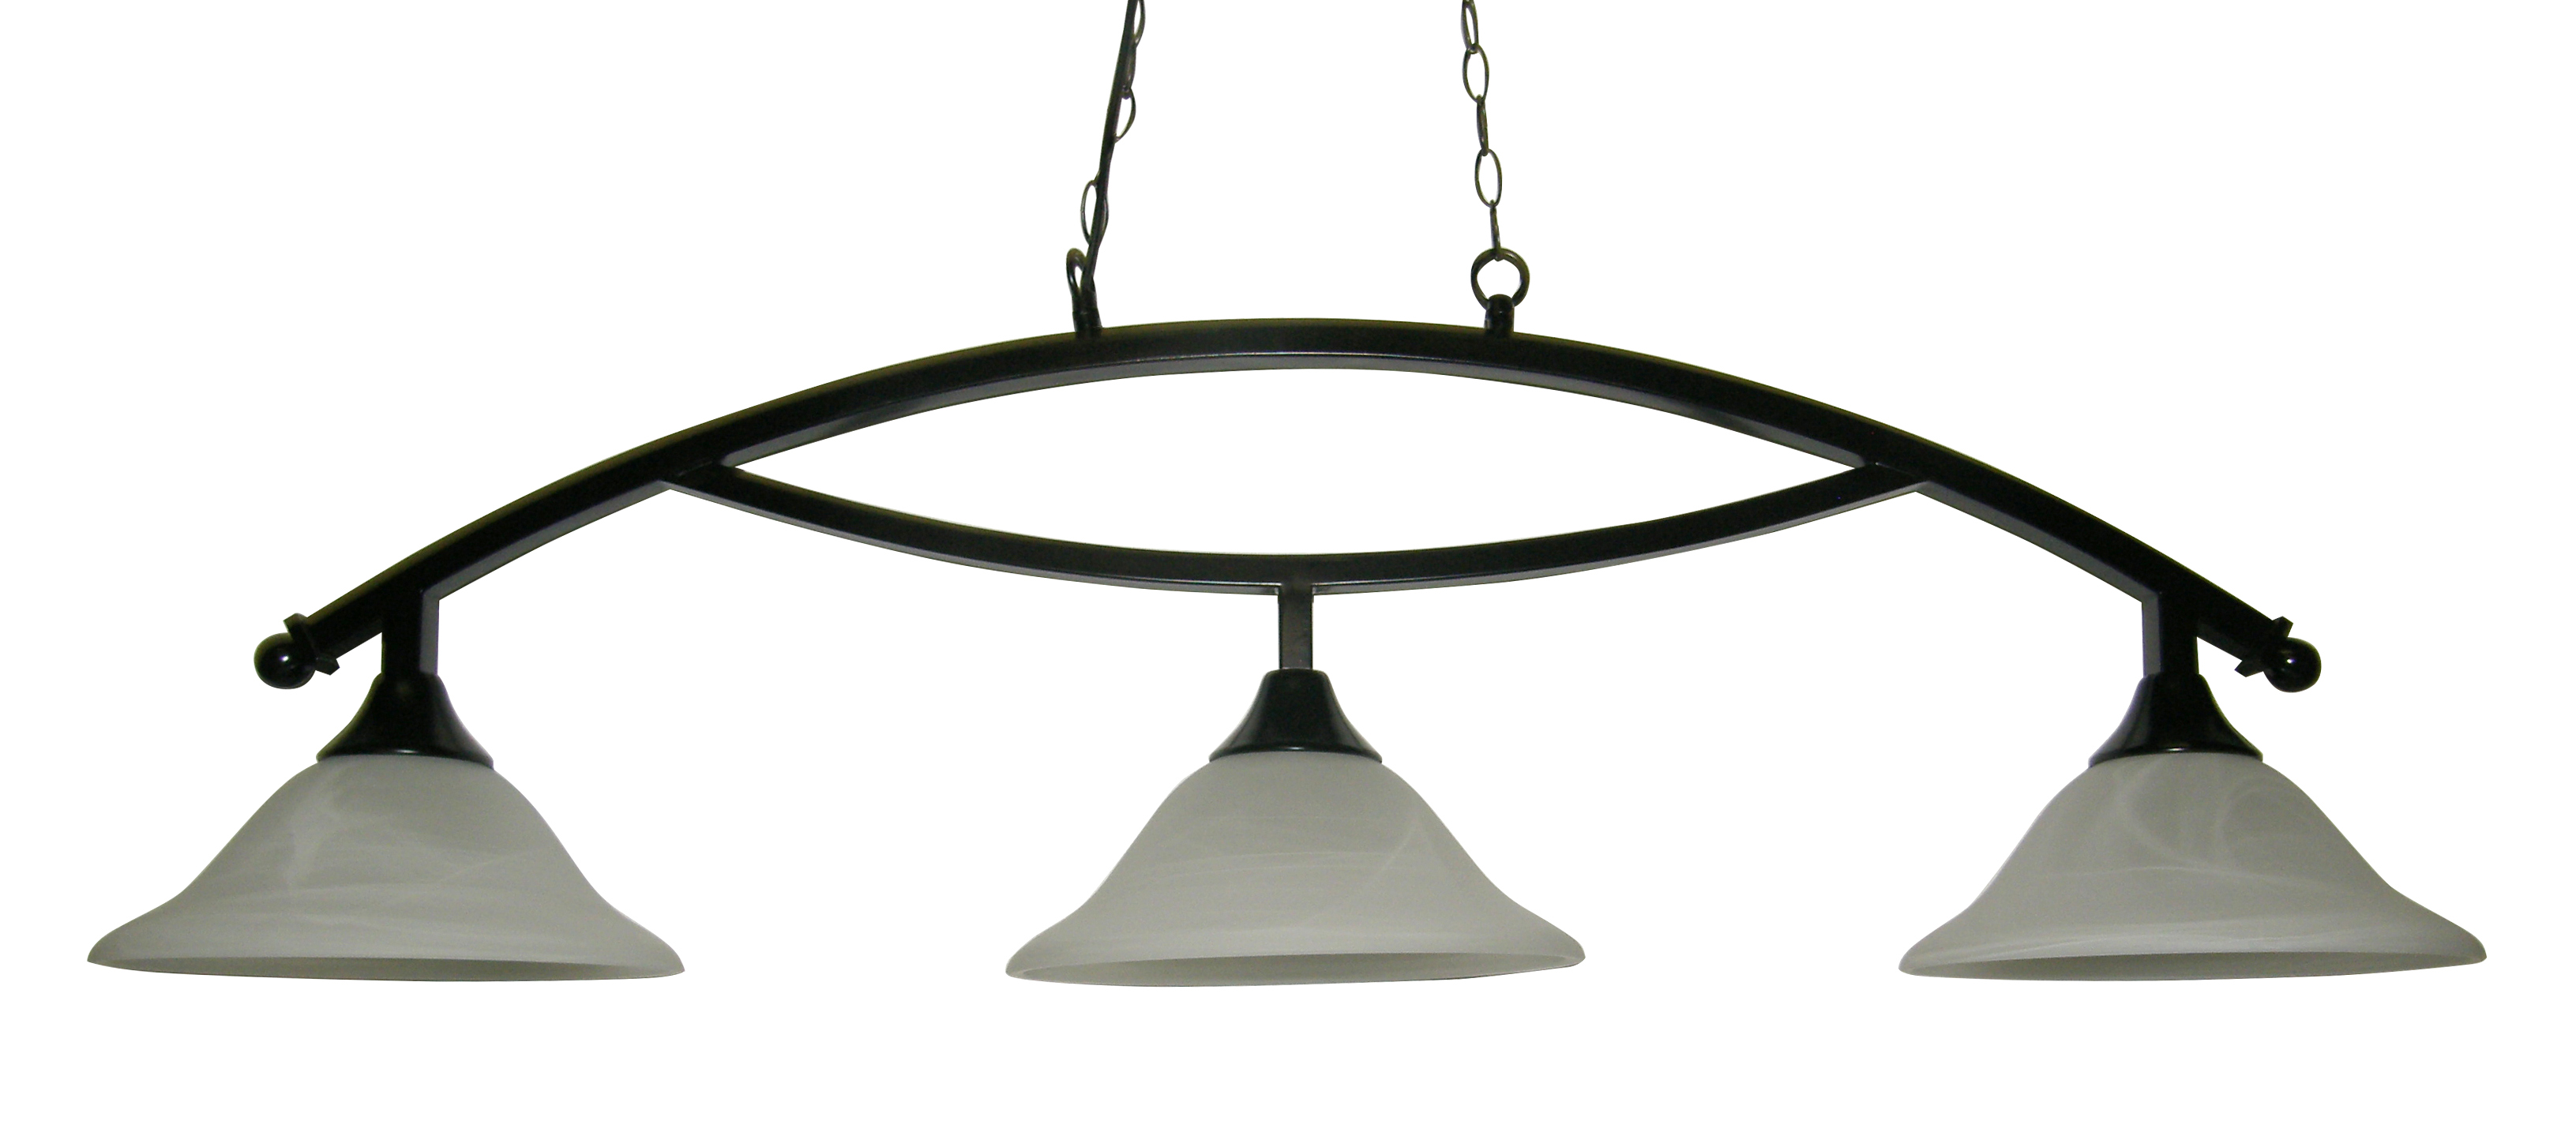 "50"" Black Metal Arch Style Pool Table Light Lamp With White Glass Shades by Iszy Billiards"